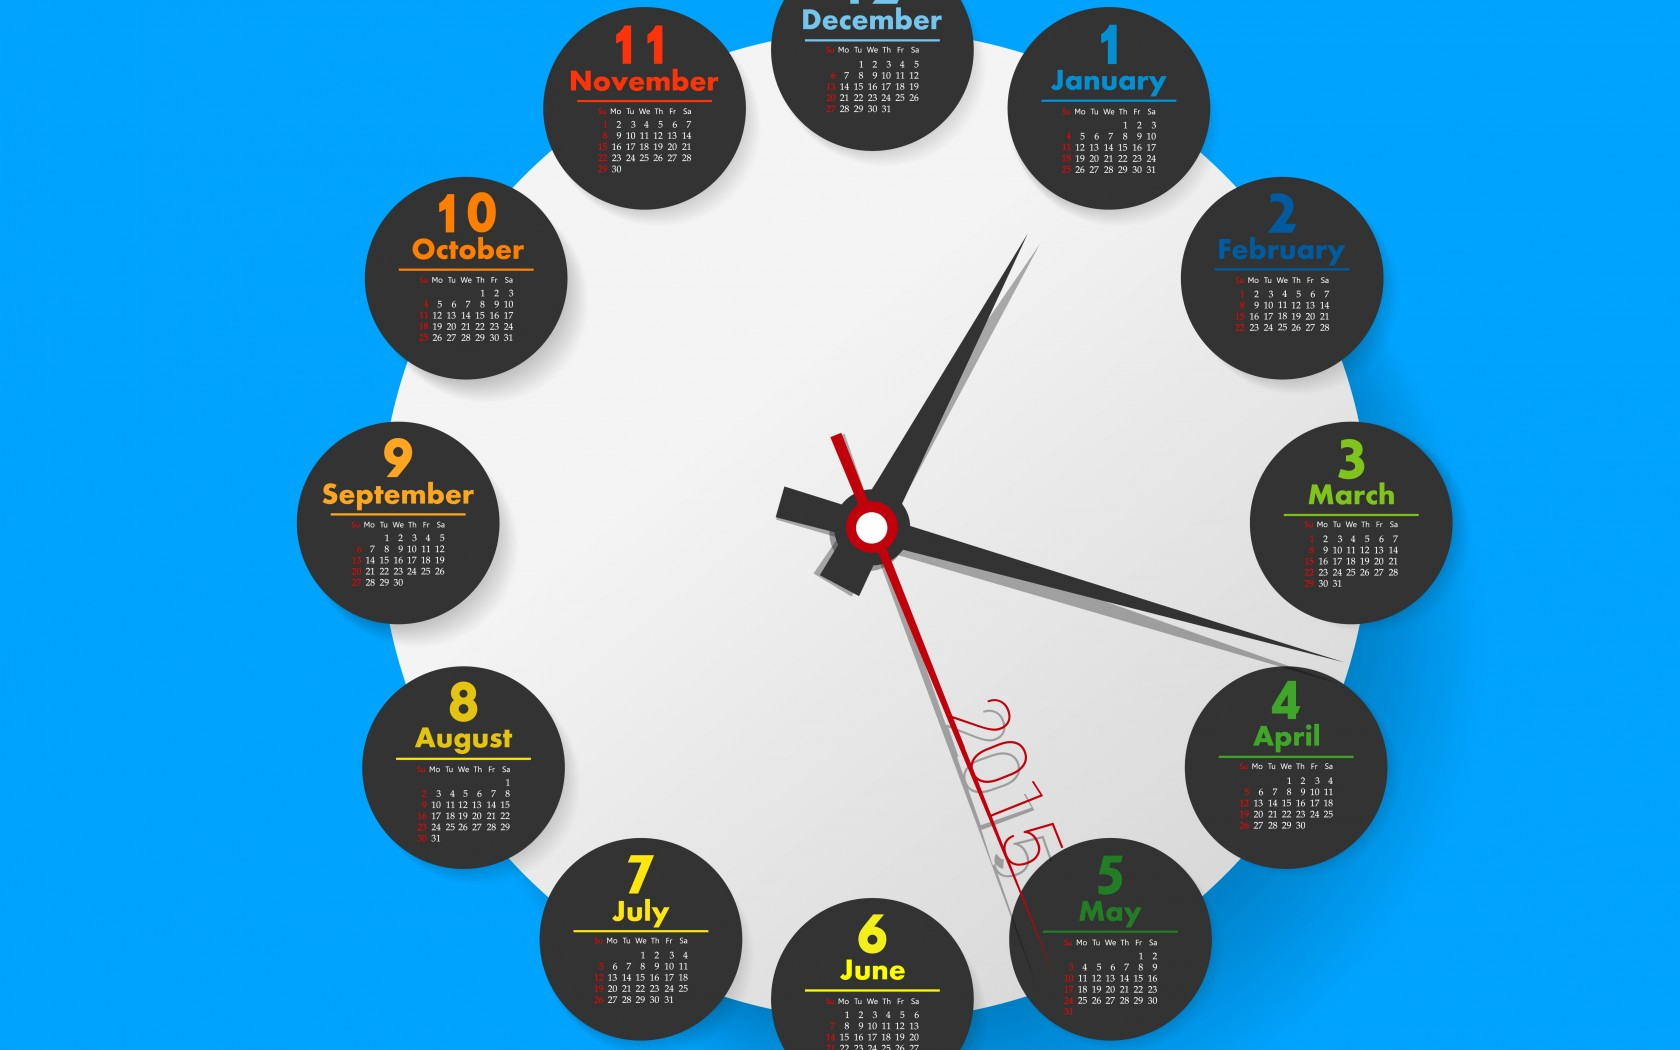 Calendar Wallpaper With Clock : Wallpaper with calendar and clock wallpapersafari